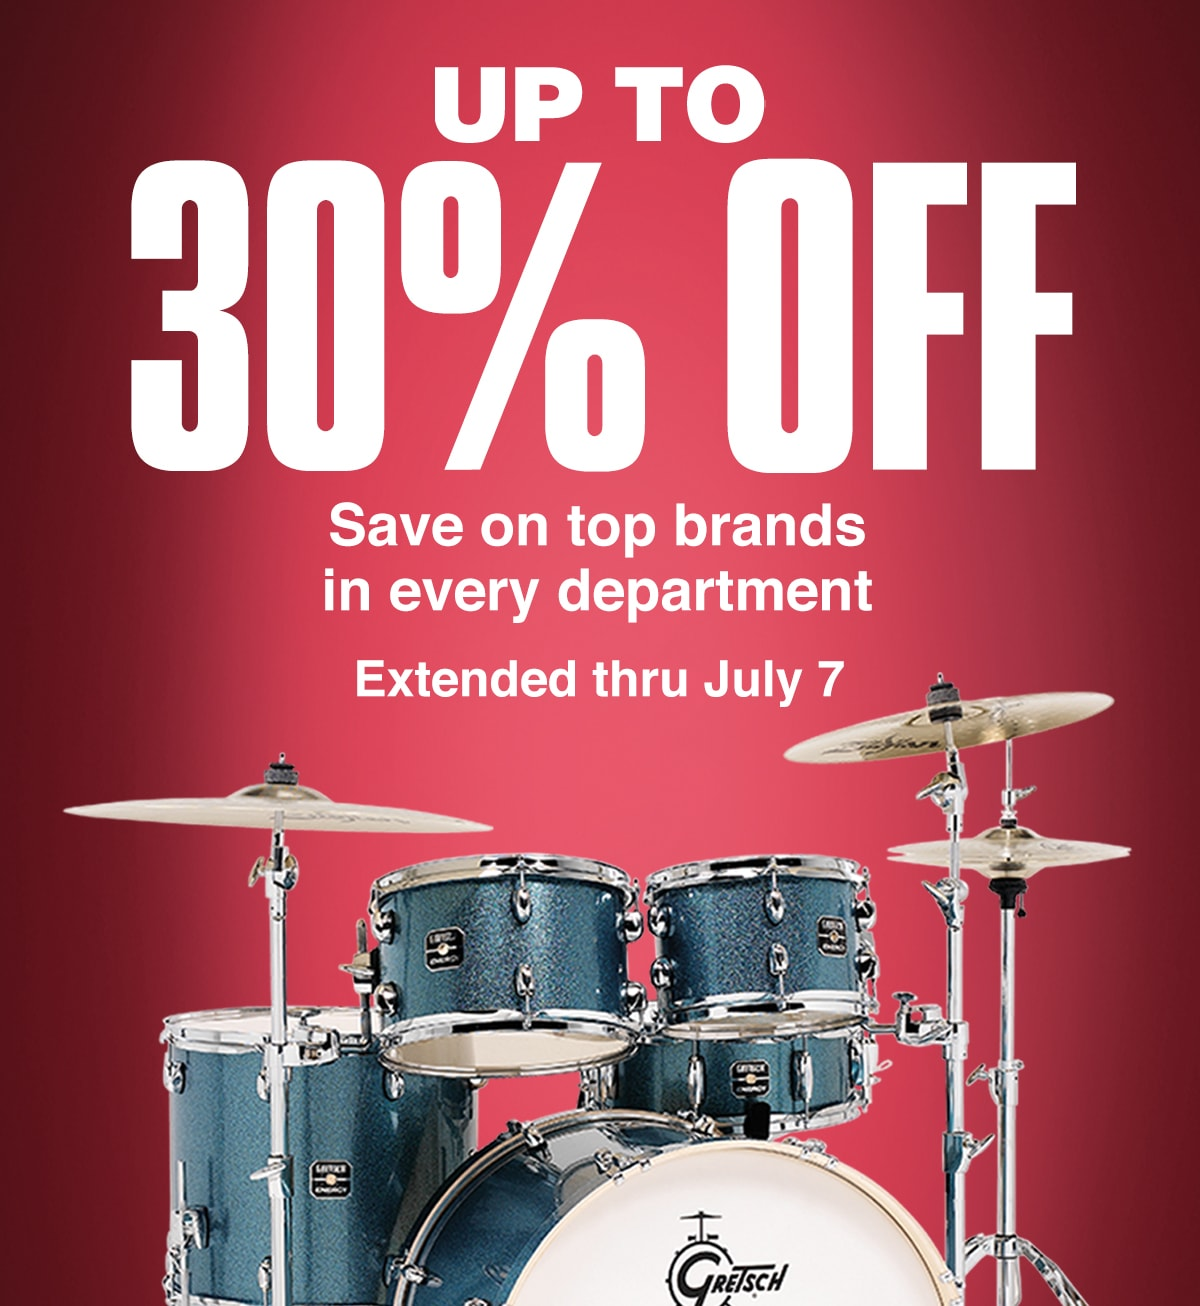 Up to 30 percent off. Save on top brands in every department. Extended thru July 7. Shop qualifying products below.